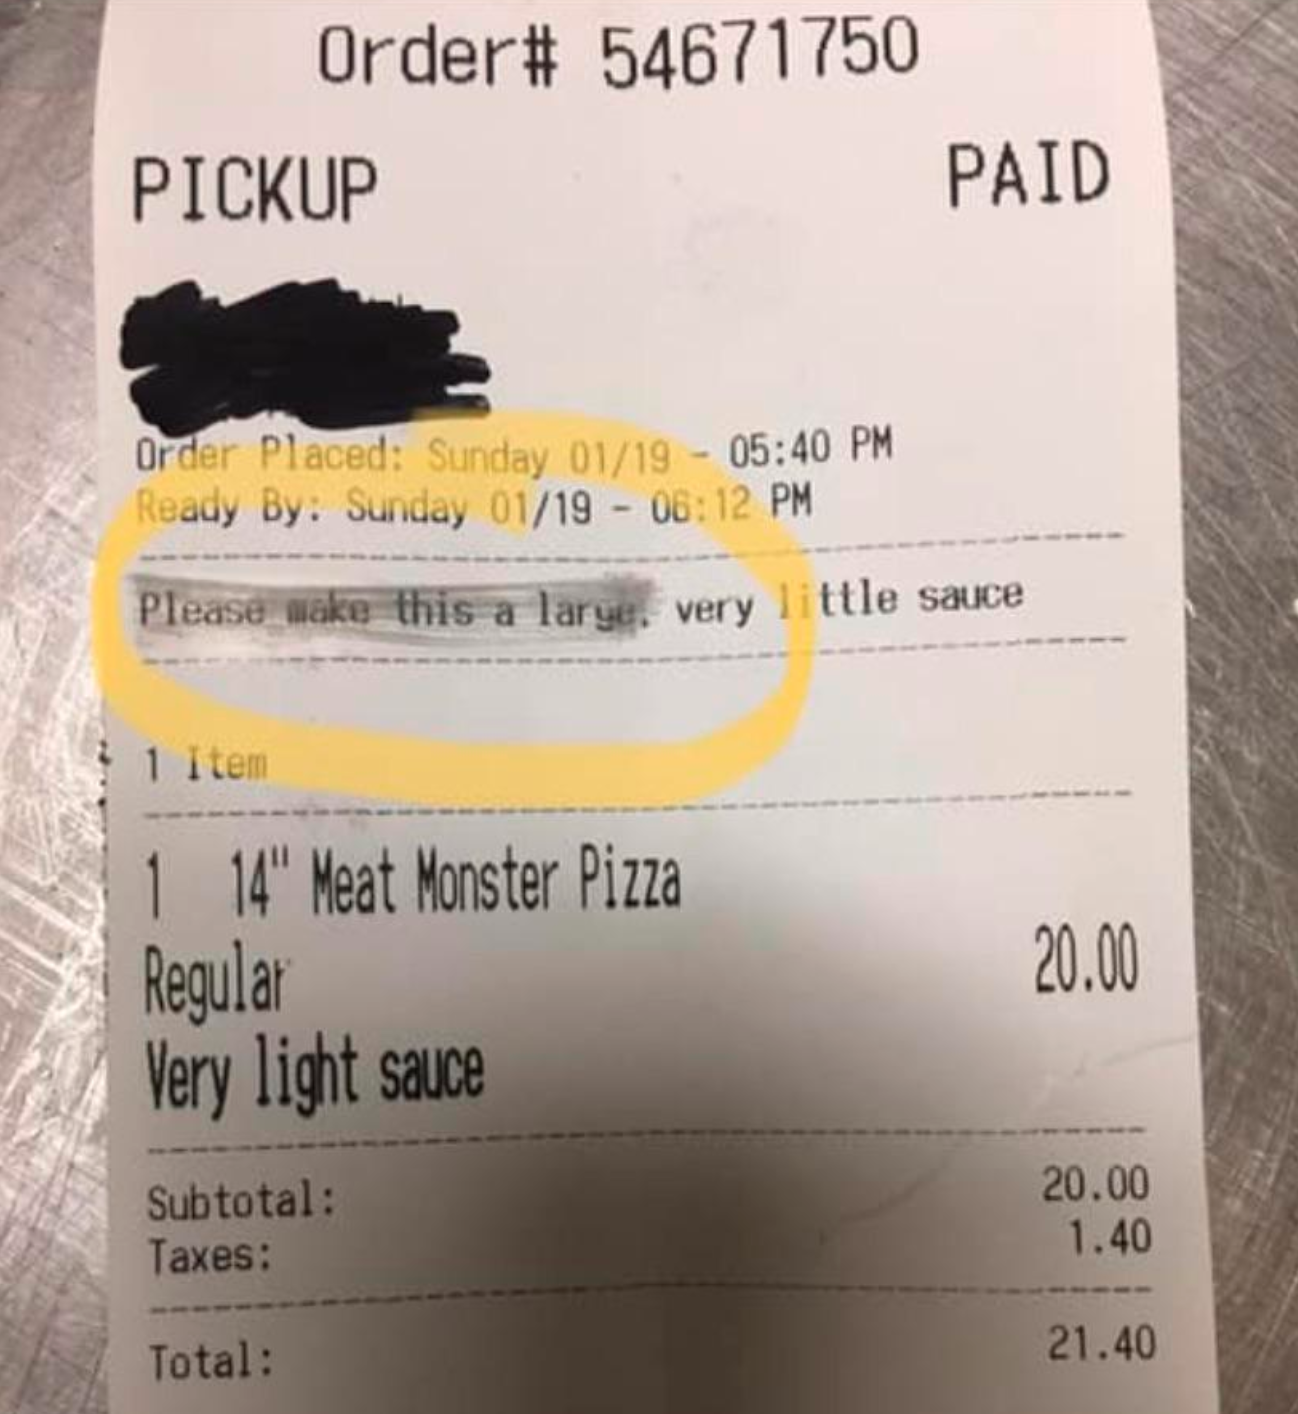 Someone ordered a small pizza and asked for the restaurant to make it a large in the notes